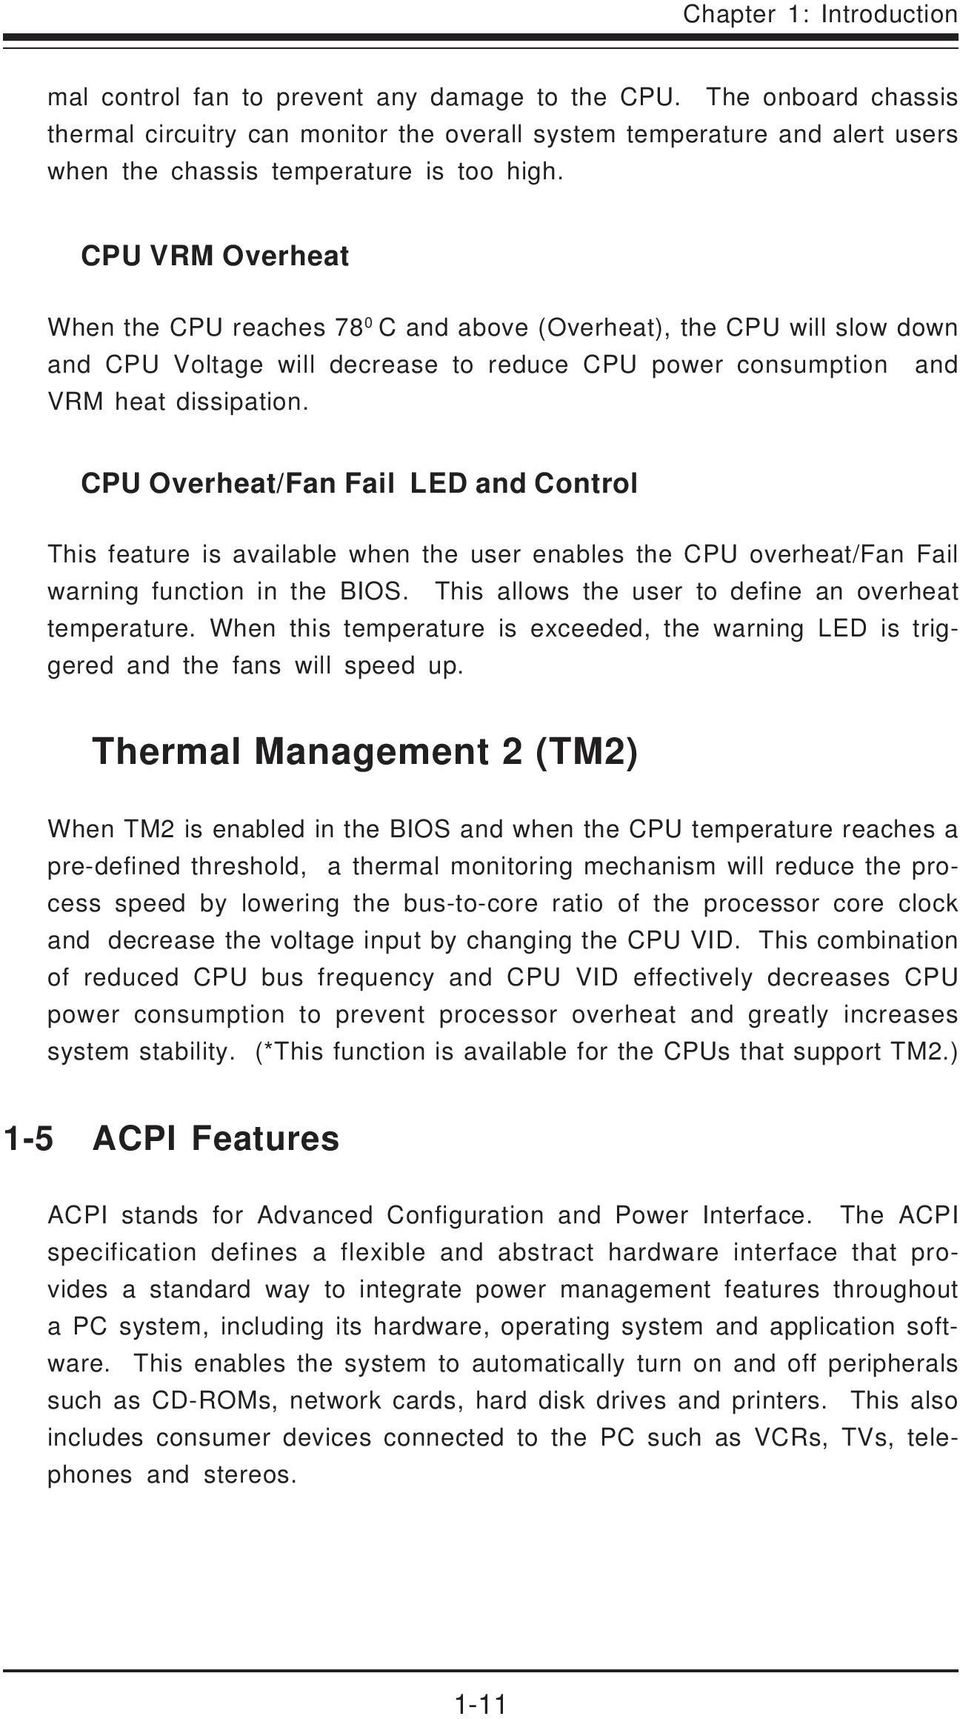 CPU VRM Overheat When the CPU reaches 78 0 C and above (Overheat), the CPU will slow down and CPU Voltage will decrease to reduce CPU power consumption and VRM heat dissipation.